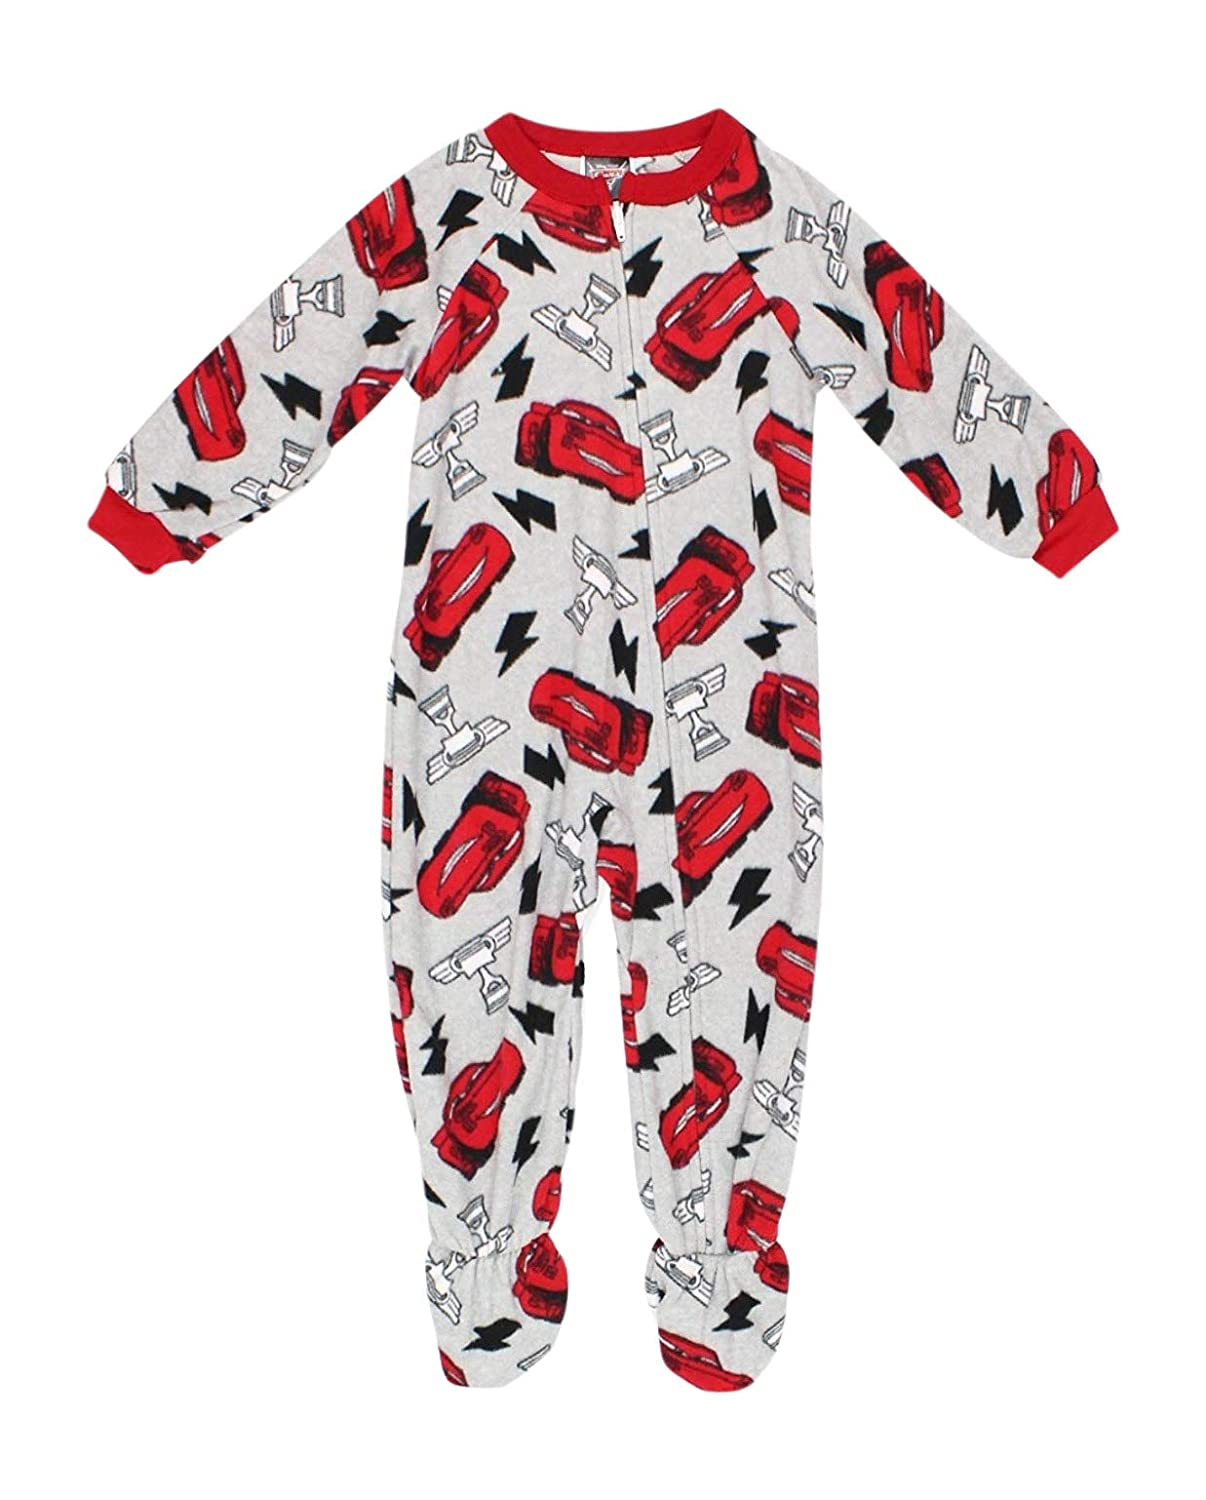 Disney Pixar Cars Boy's 2T Lighting McQueen Trophy Print Footed Pajama Sleeper